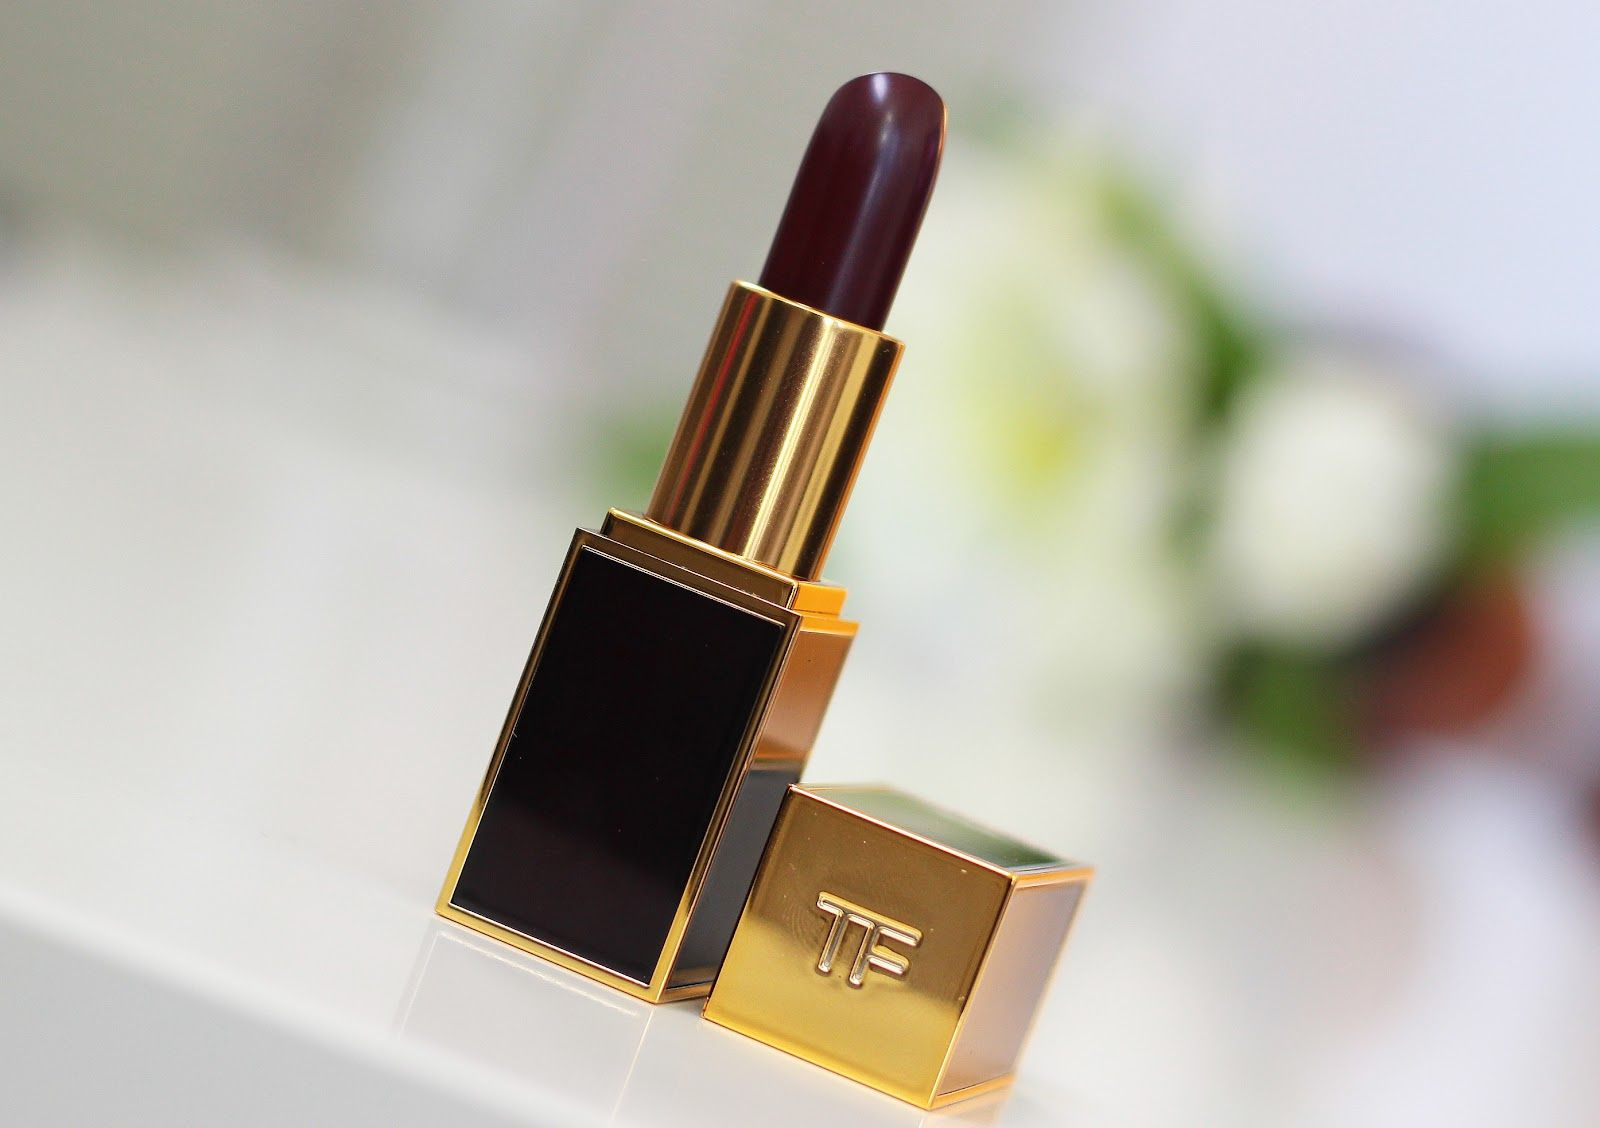 Parison Burberry Lip Cover In Deep Burgundy Vs Tom Ford Beauty Black Orchid